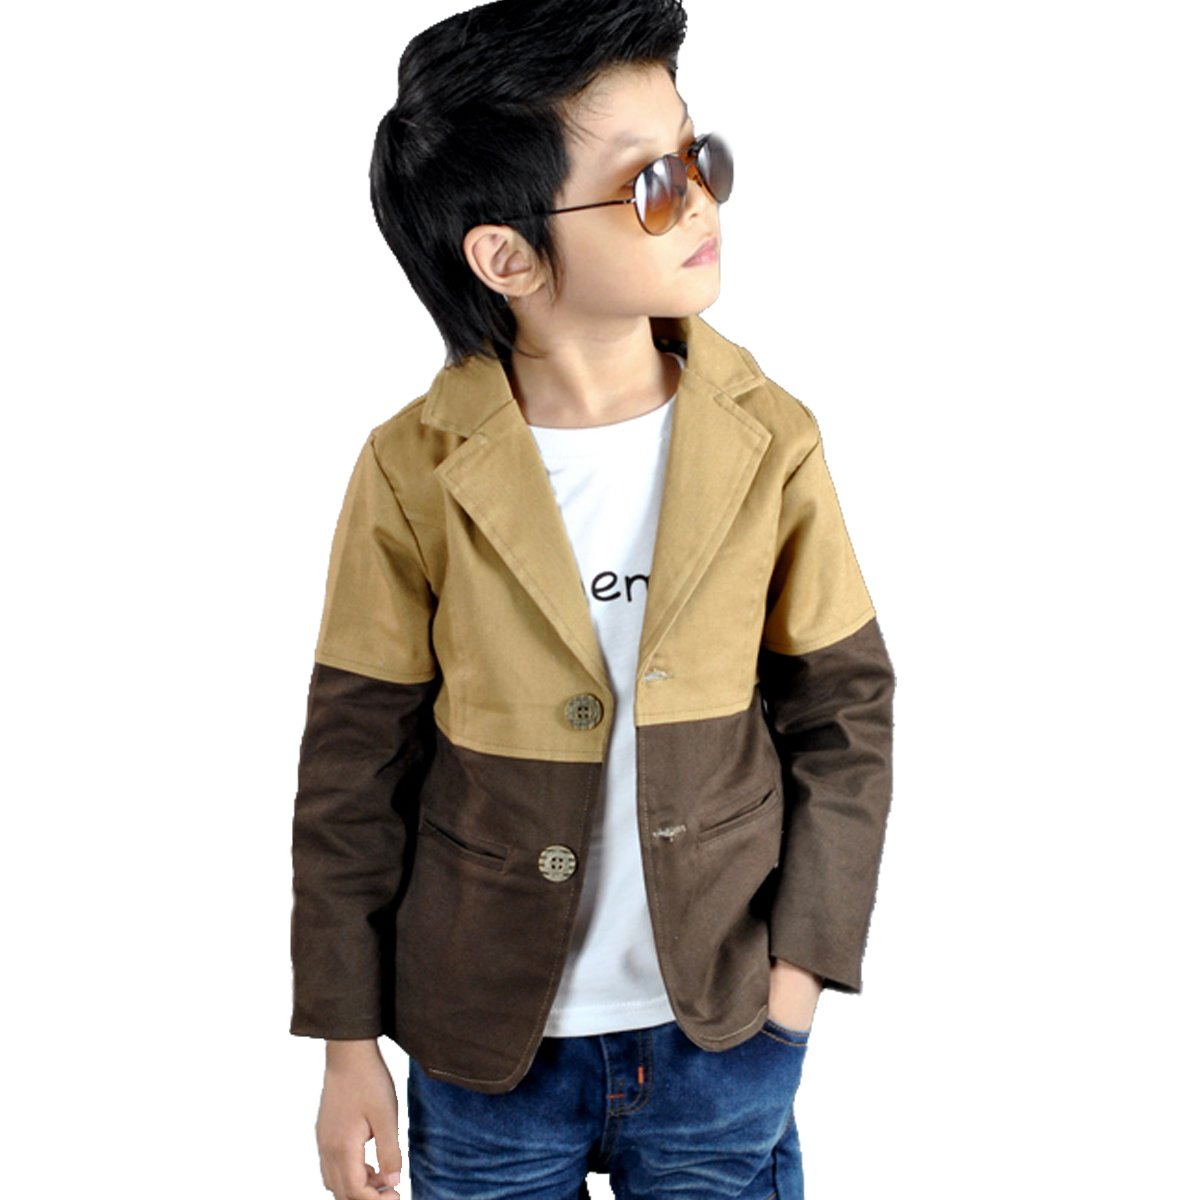 NABER Kids Boys' Fashion Contract Color Outerwear Blazer Jacket Suit Age 4-12 Yrs (8-9 Years)